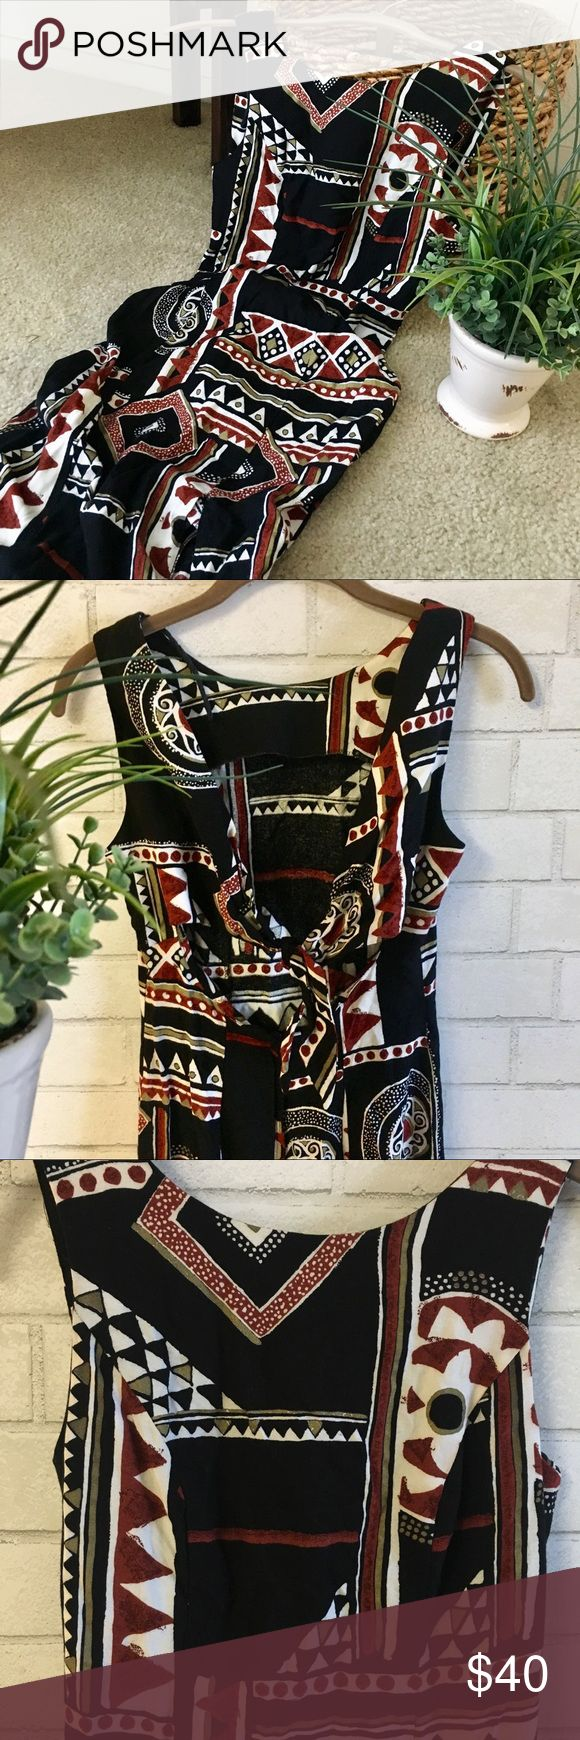 🌵🌺Beautiful Vintage Tribal Maxi Dress🌺🌵 🌵🌺Beautiful Vintage Tribal Maxi Dress🌺🌵 This is absolutely Stunning on and perfect for the Summer! It's true Vintage size 7/8 but fits like a Small. It's 100% Rayon, Dry Clean Only. Has a pretty Tribal Black, Rust, White Print, slit on one side, a low back with a zipper and cute bow for added fun! Won't last long! It's never too early to get ready for Summer! Great Condition. Comes from a smoke free home:)🌺 New Listing✨☀️ Dawn Joy Fashions…